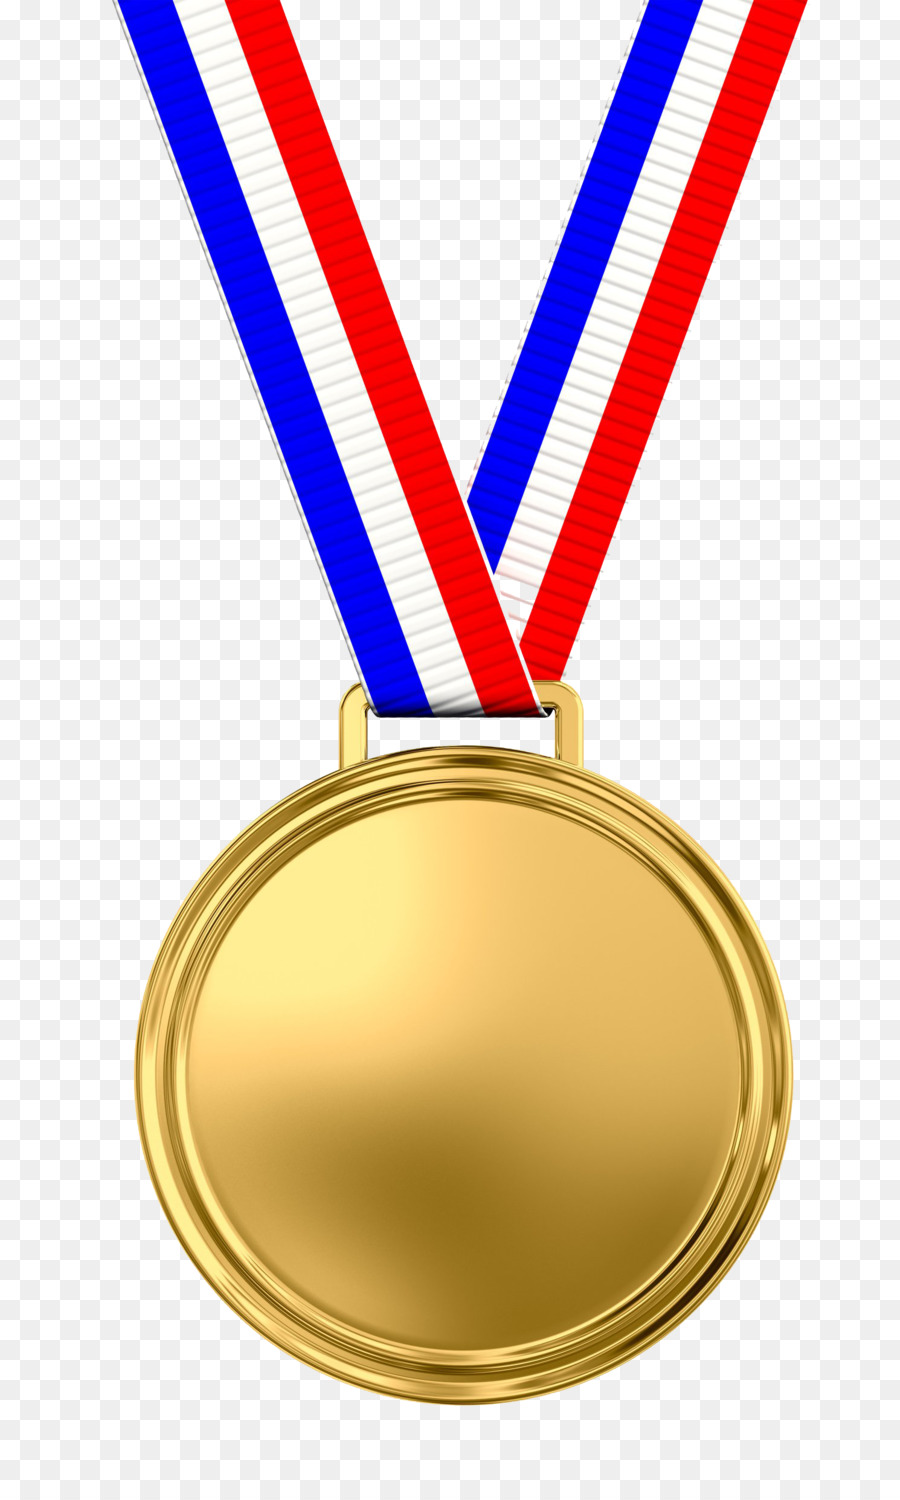 gold medal olympic medal clip art medal png download 1490 2483 rh kisspng com gold medal winner clipart olympic gold medal clipart